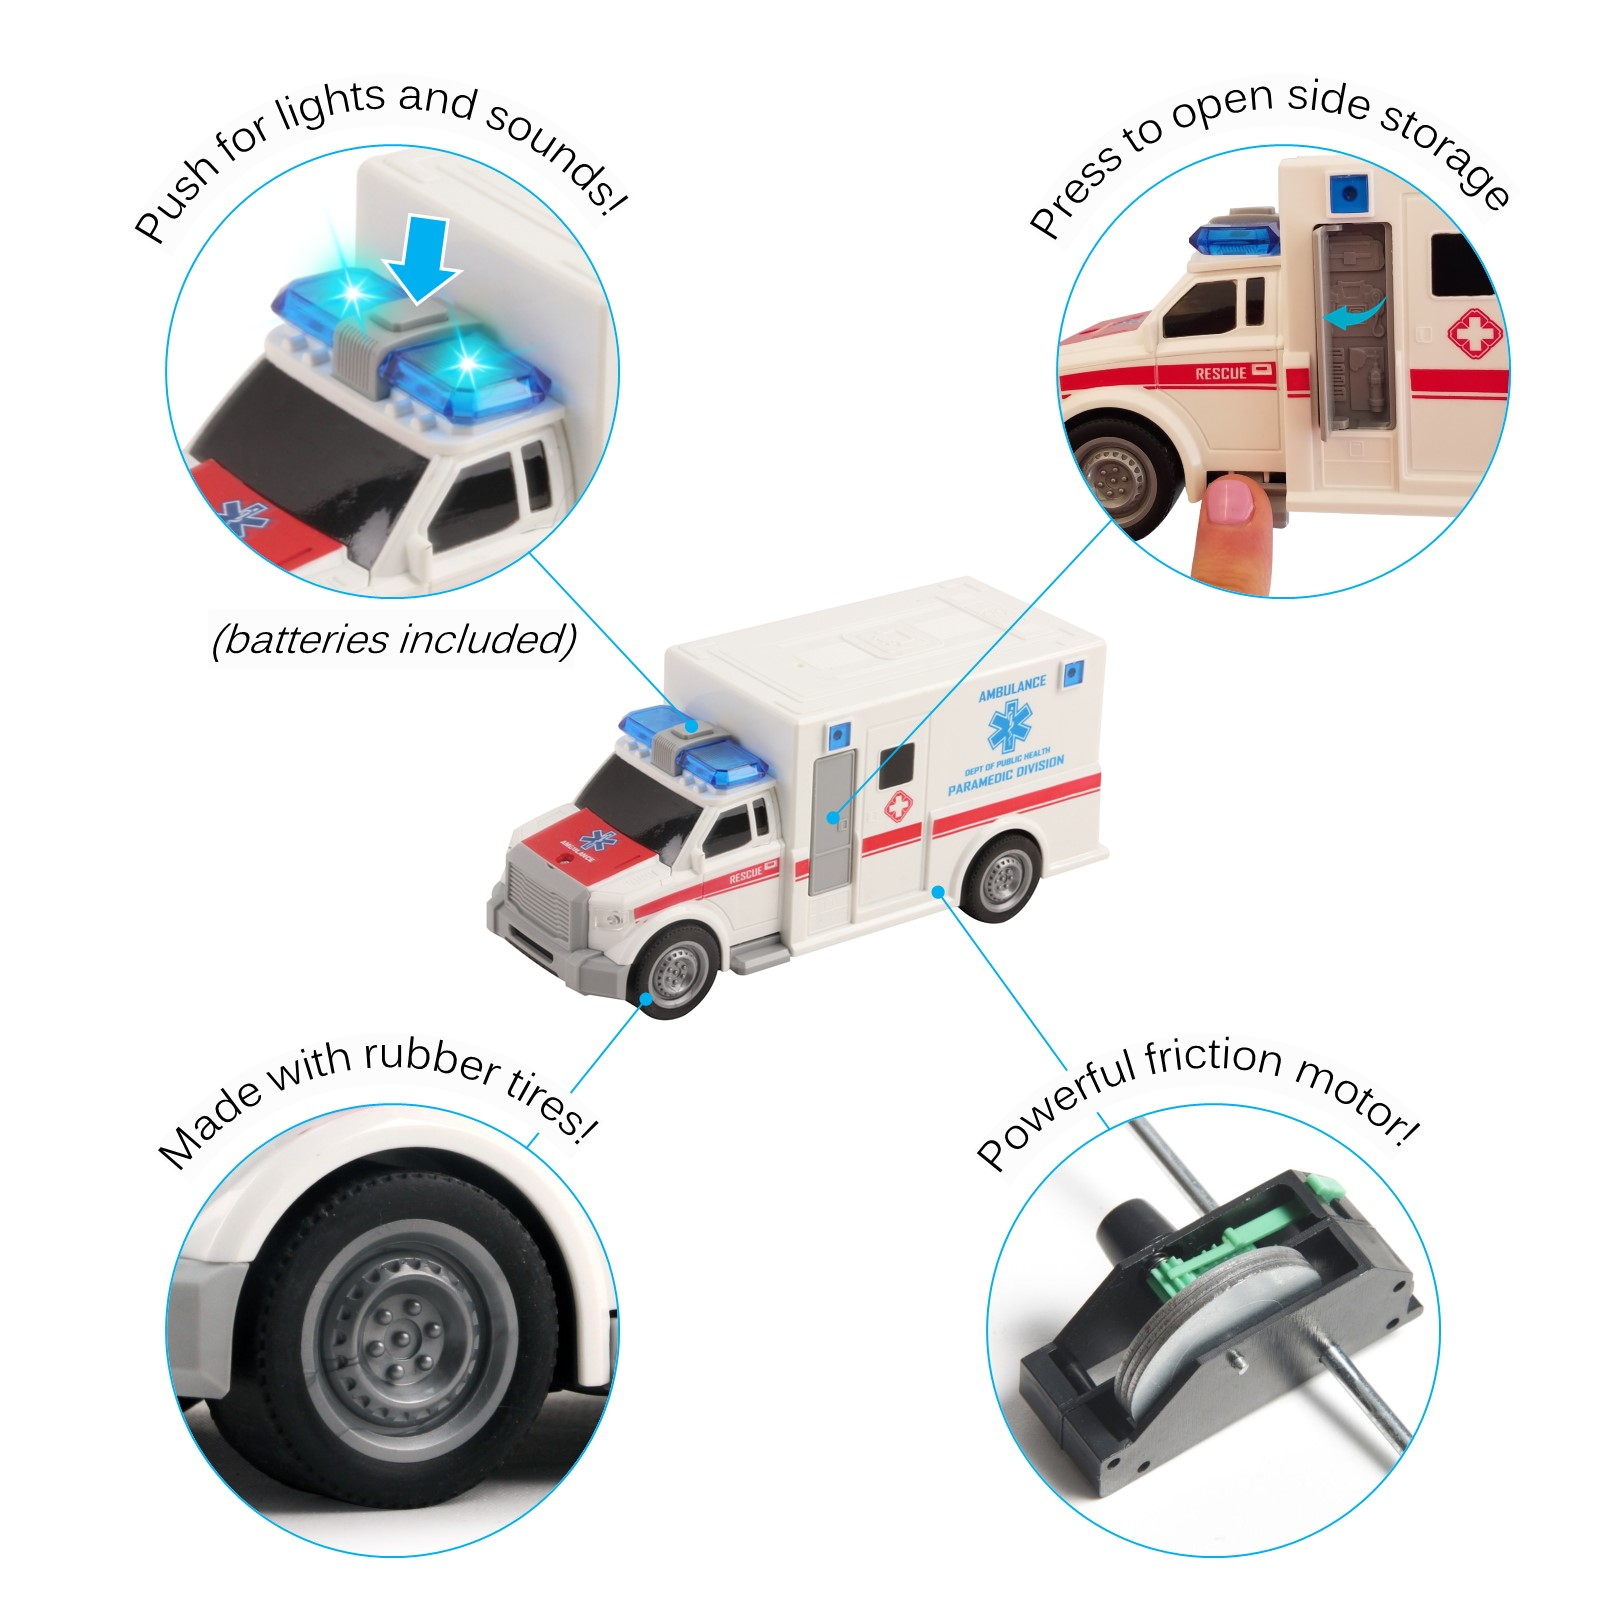 Rescue Ambulance Friction Powered 120 Scale Toy Car With Lights And Sounds Durable Kids Medical Transport Emergency Vehicle Push And Go Pretend Play Van Great Gift For Children Boys Girls